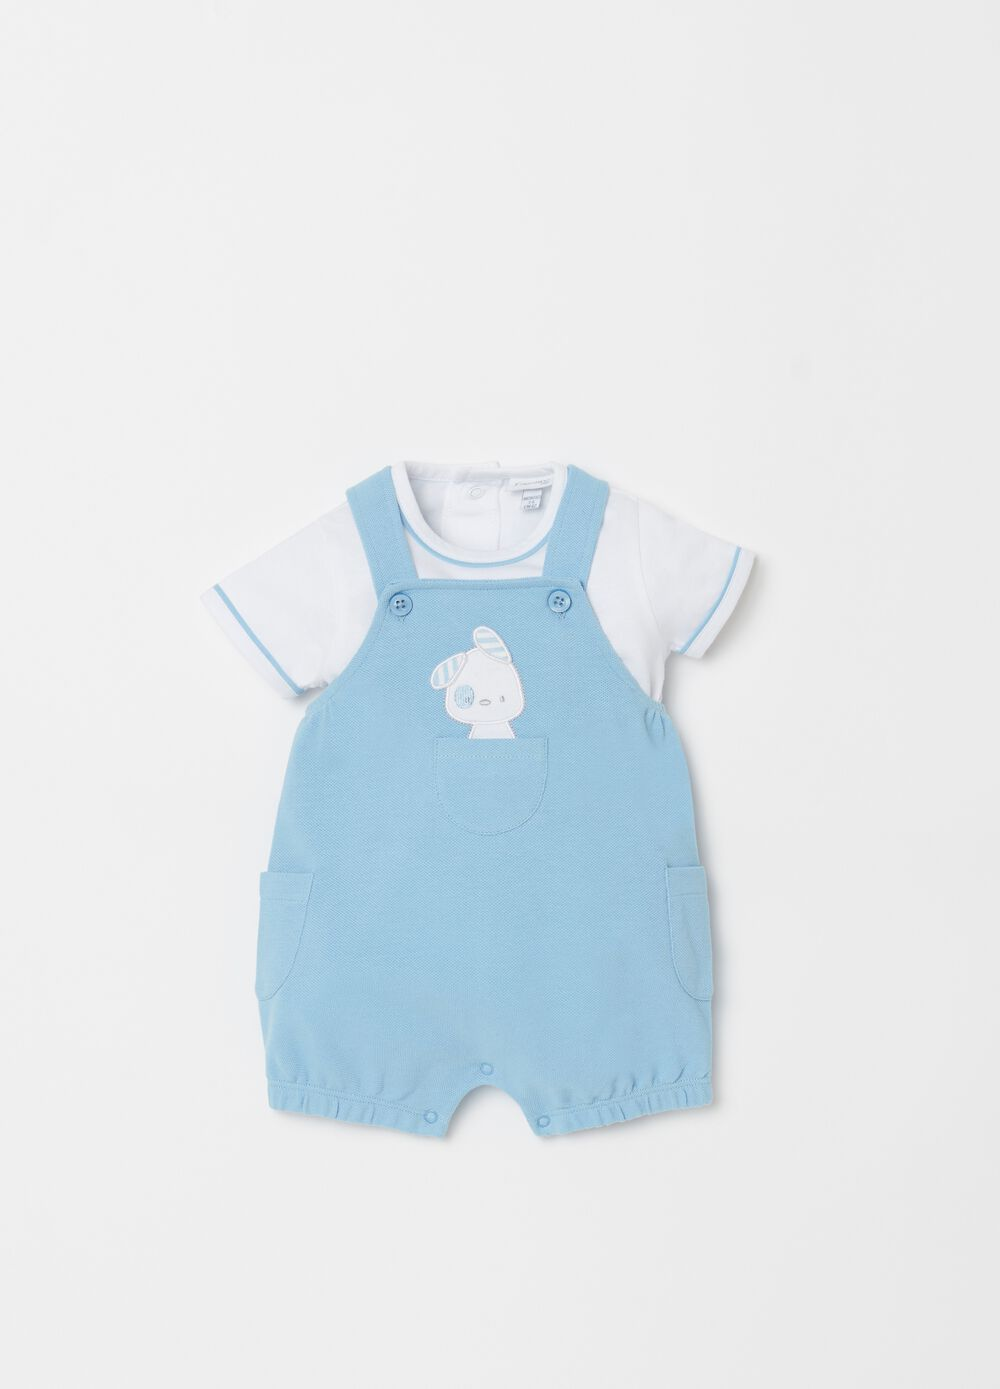 T-shirt and onesie set with embroidery and pockets